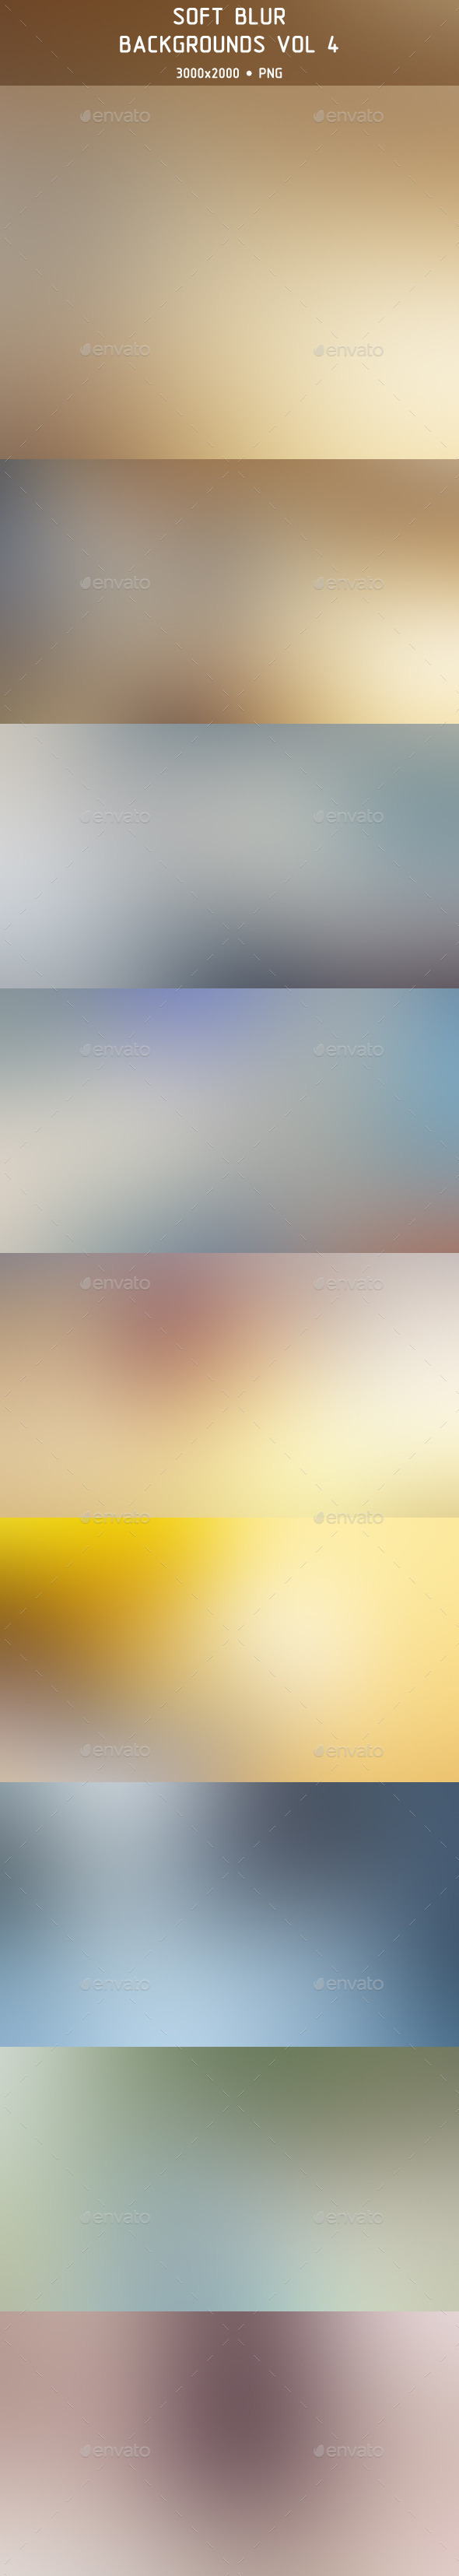 Soft Blur Backgrounds Vol 4 - Abstract Backgrounds